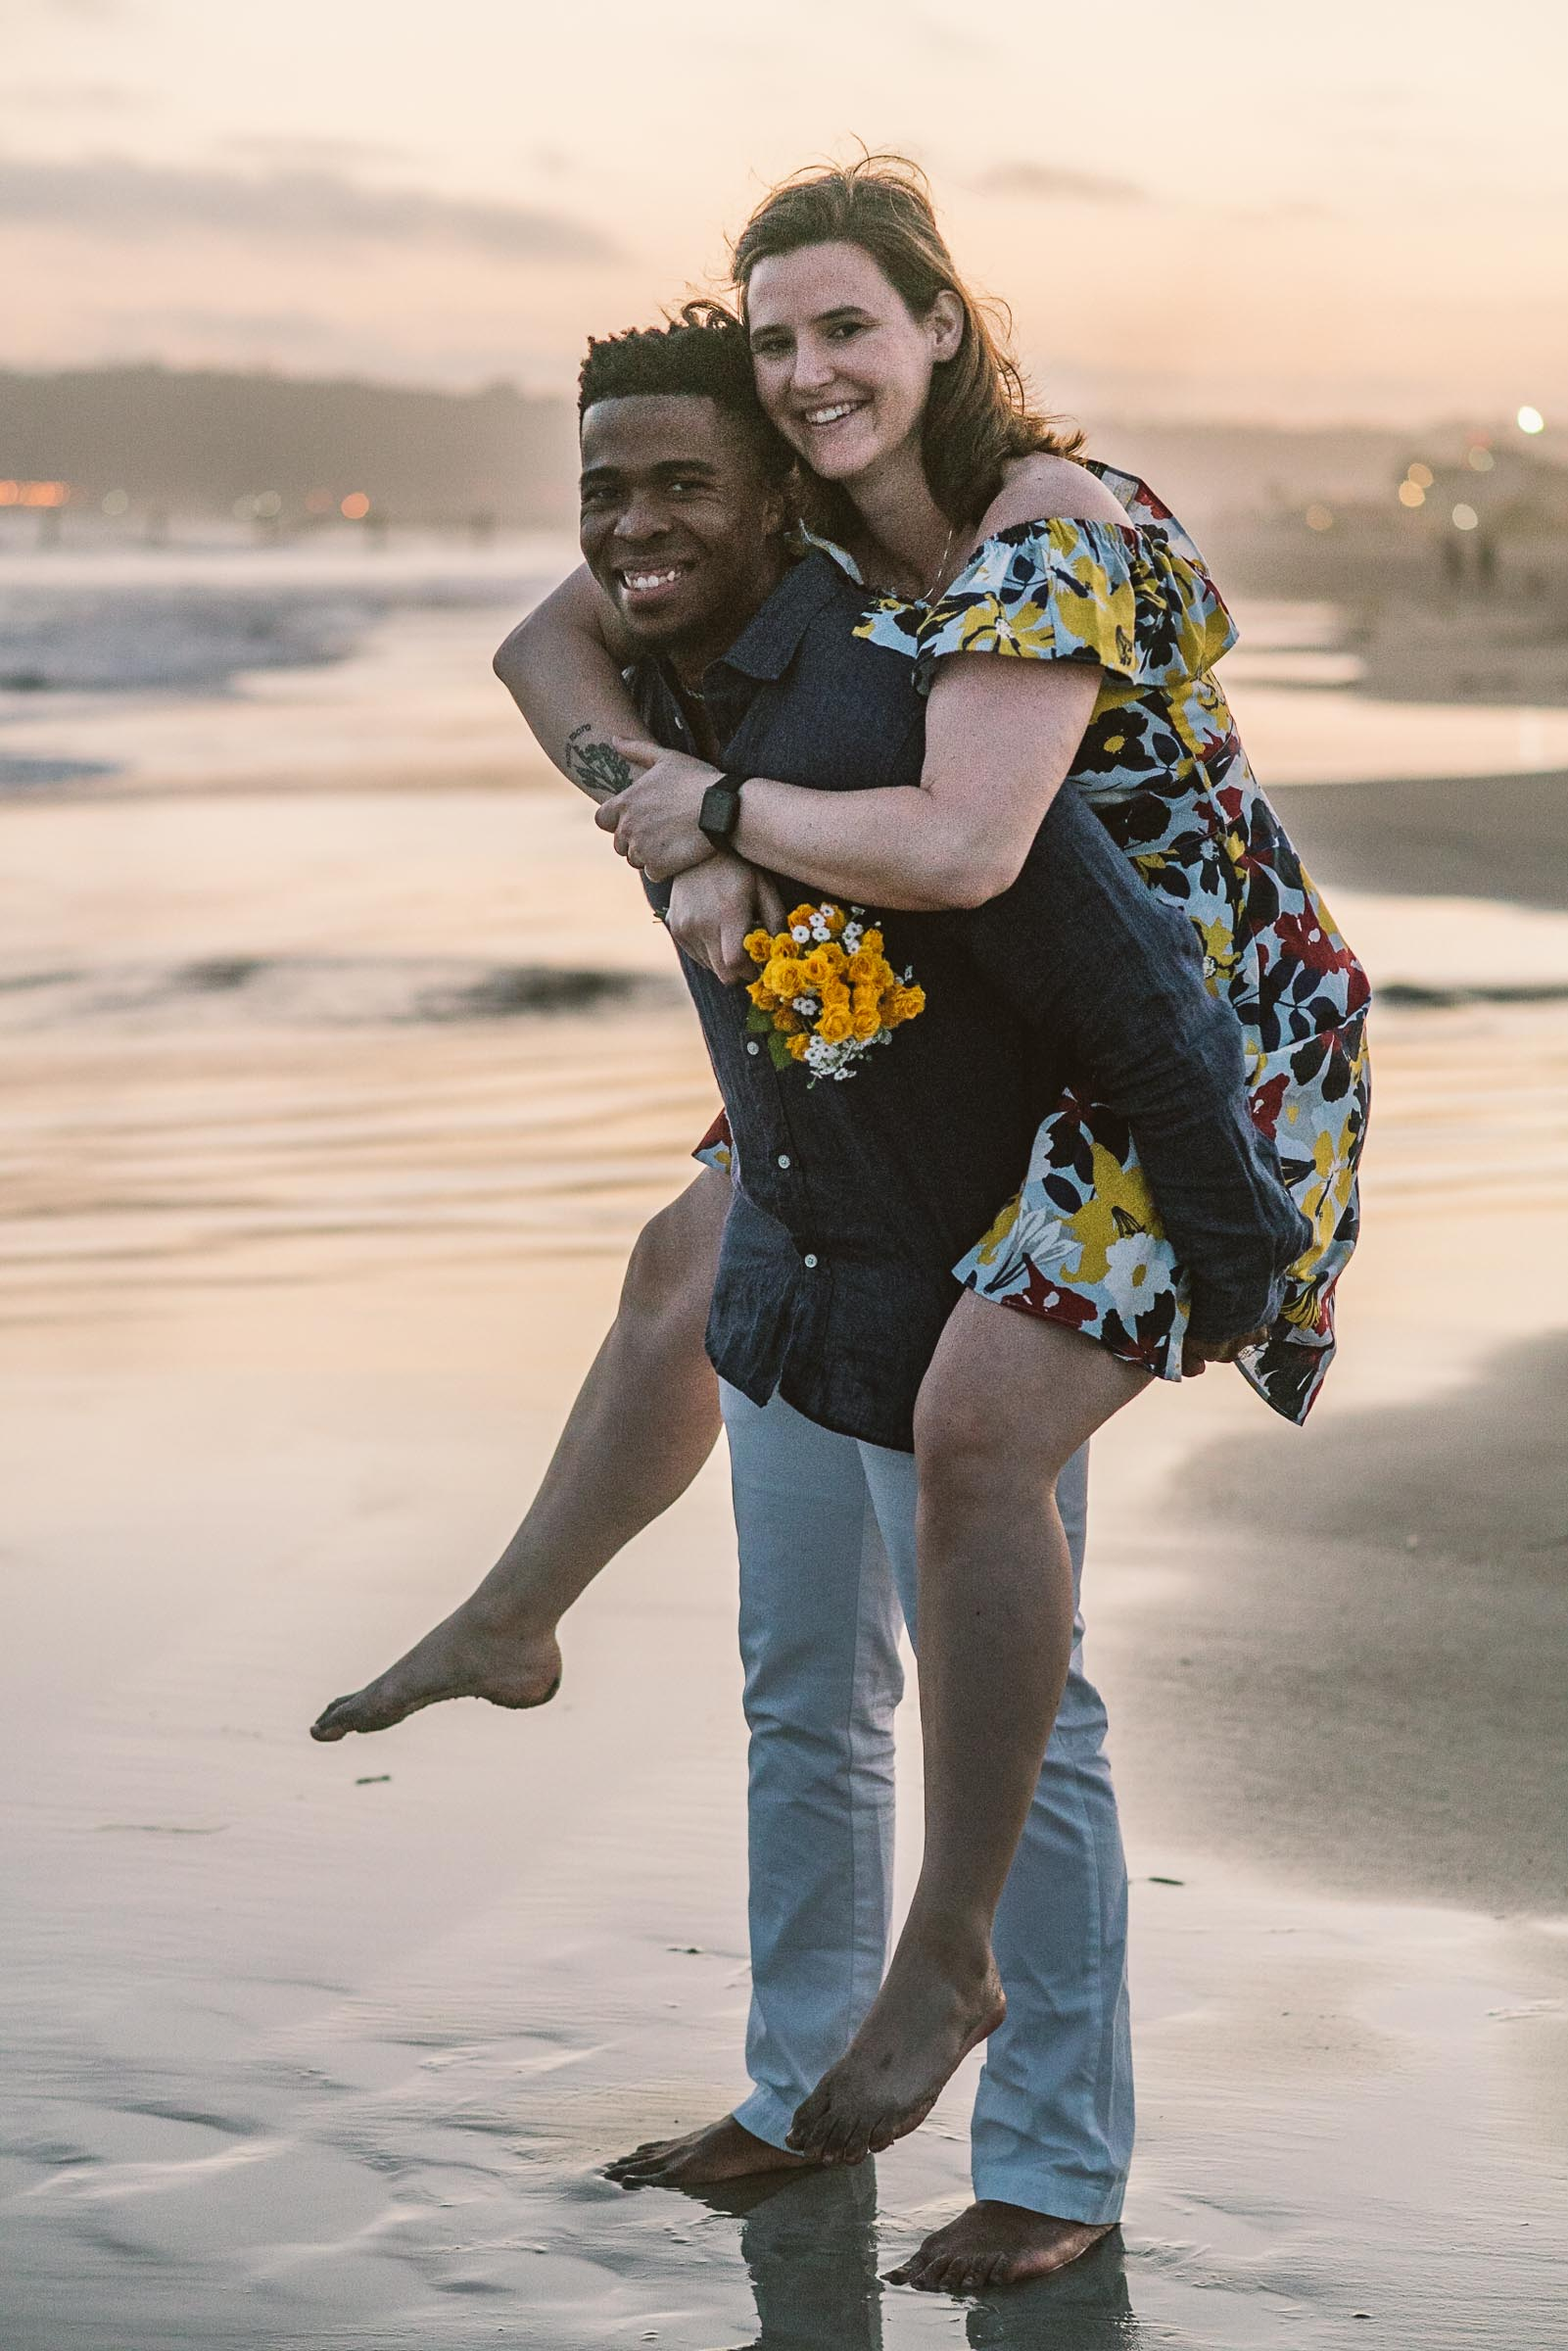 engagement session coronado island sunset san diego california white girl yellow flowers blue red dress african american interracial couple dusk